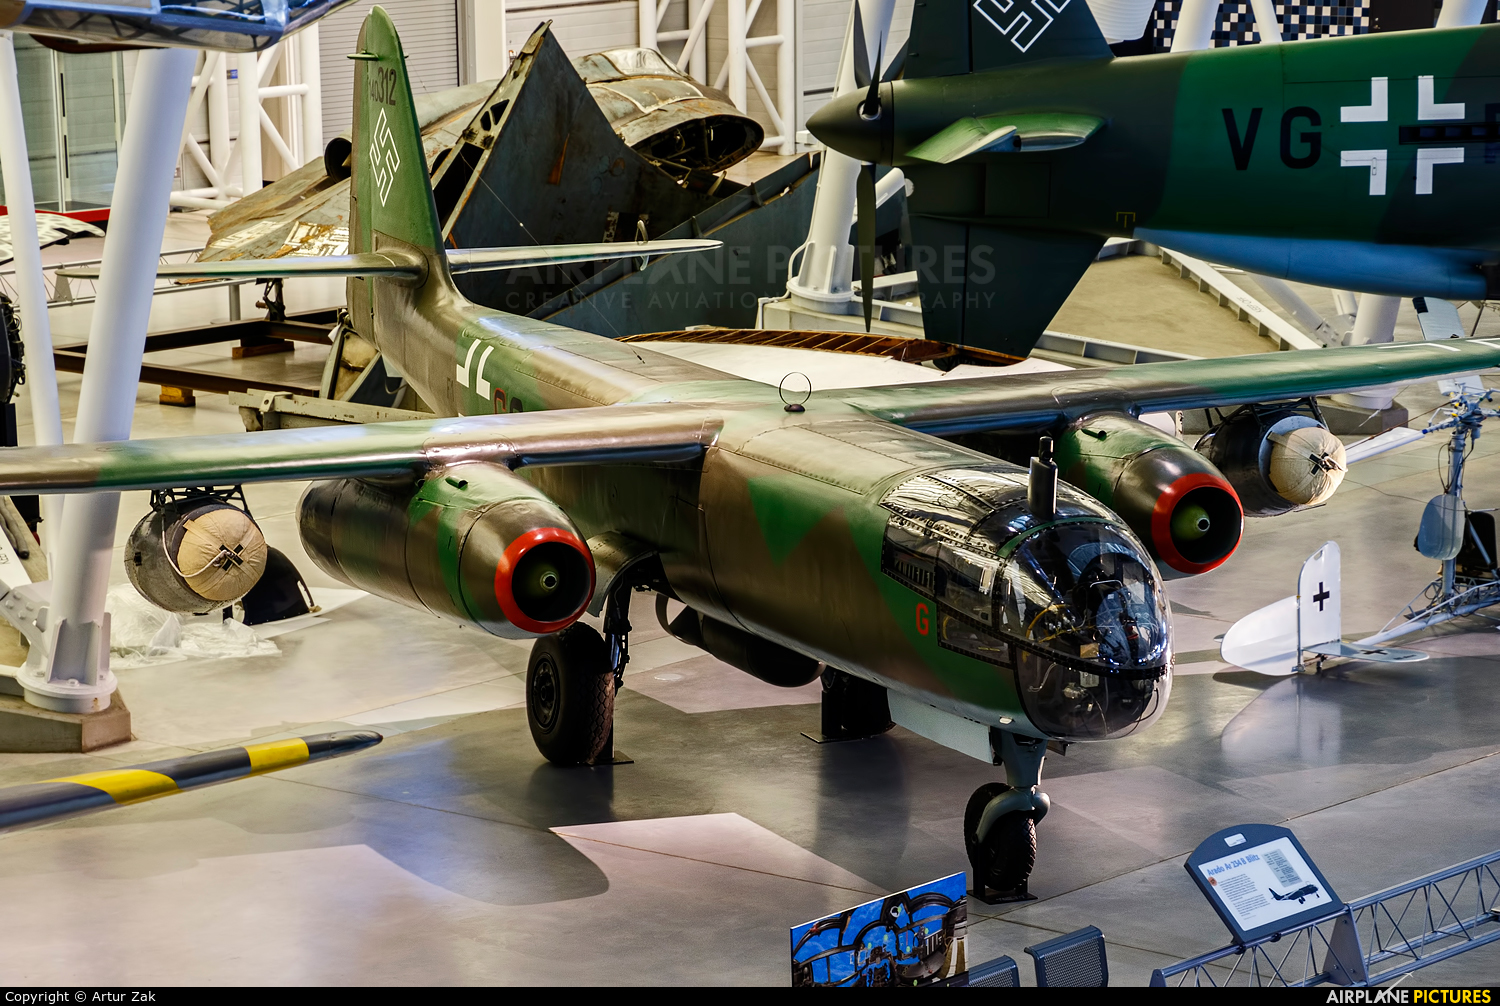 Germany - Luftwaffe (WW2) 140312 aircraft at Steven F. Udvar-Hazy Center